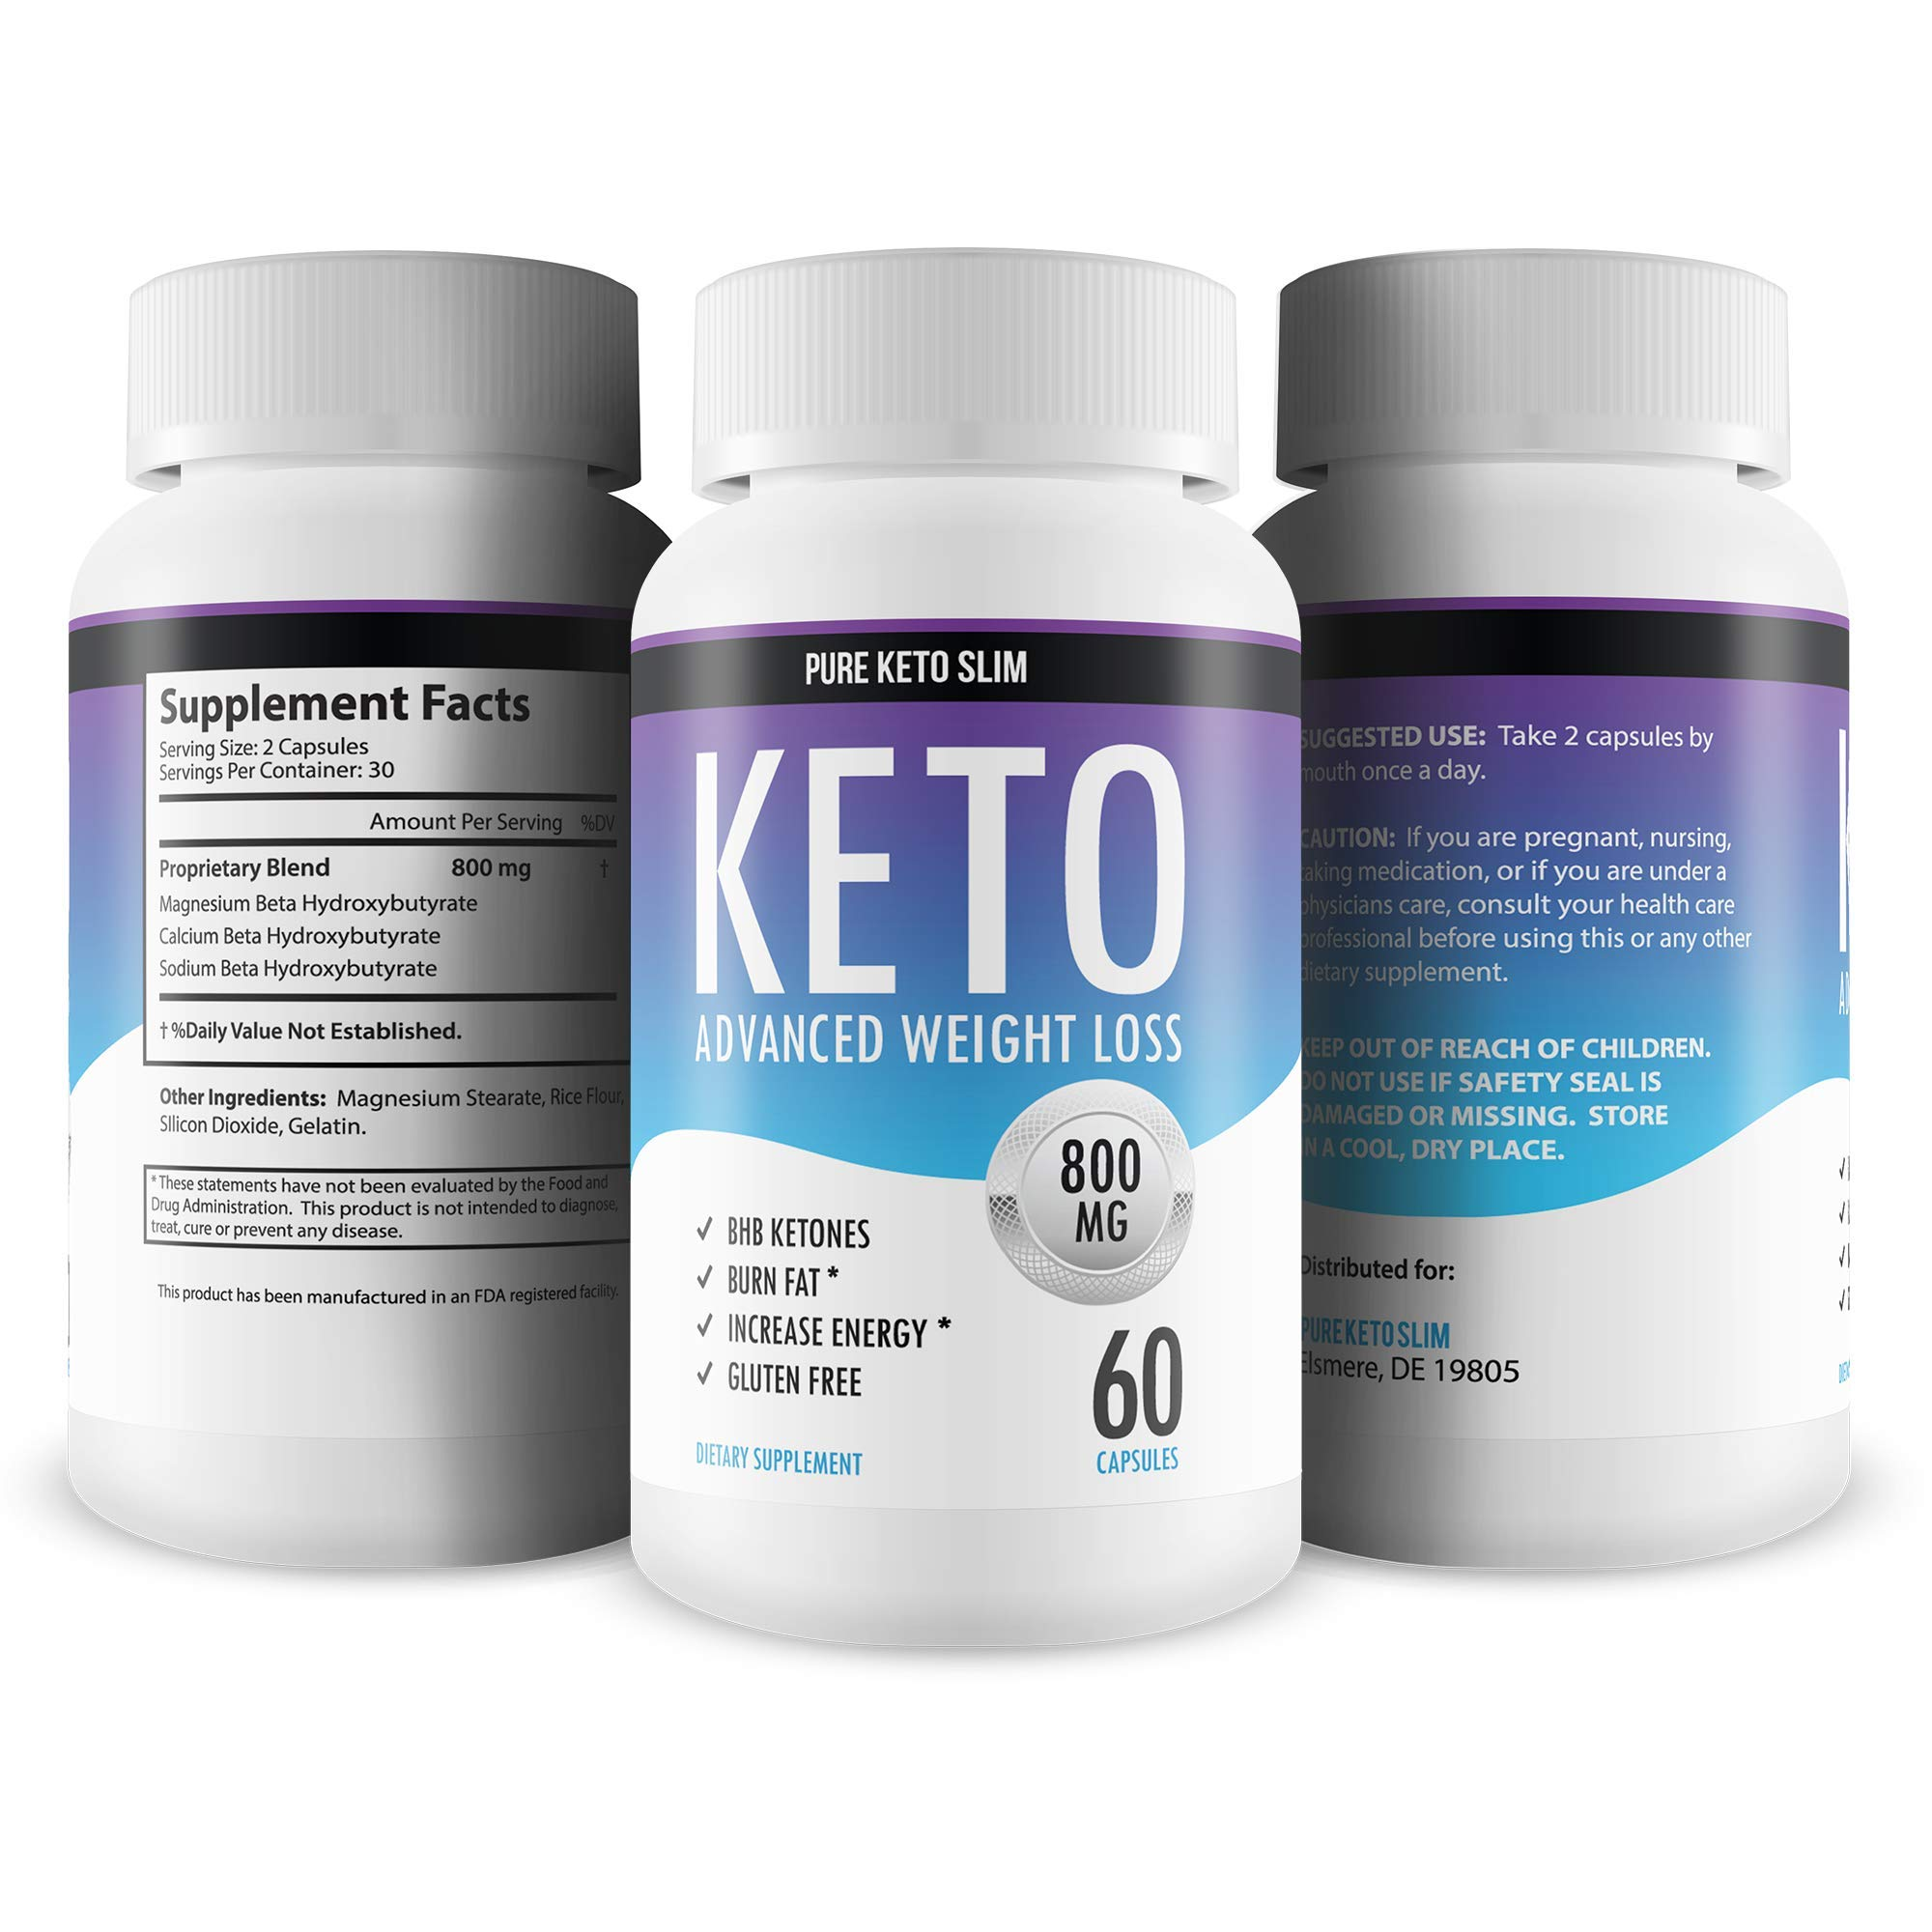 Pure Keto Slim - Keto Diet Pills - Exogenous Ketones Help Burn Fat - Weight Loss Supplement to Burn Fat - Boost Energy and Metabolism - 60 Capsules by Pure Keto Slim (Image #9)